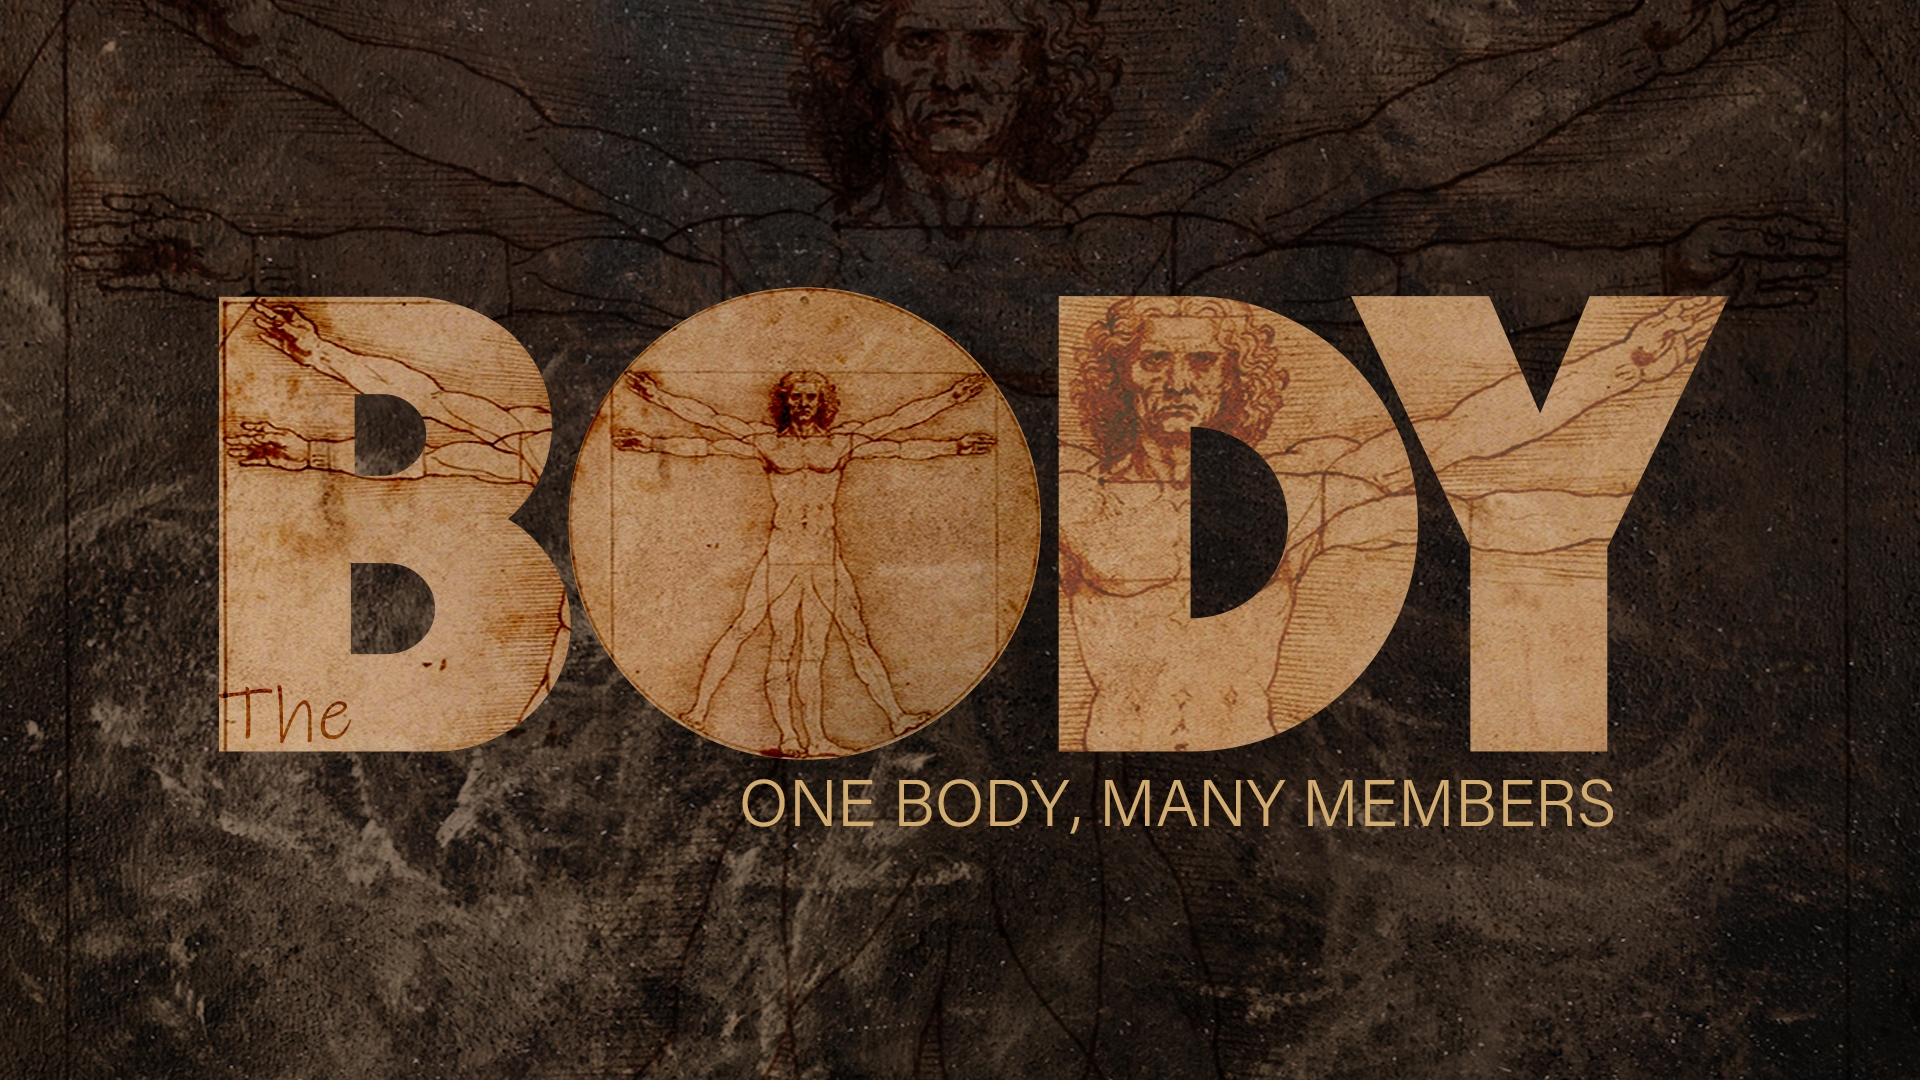 The Body: Do You Love Jesus?